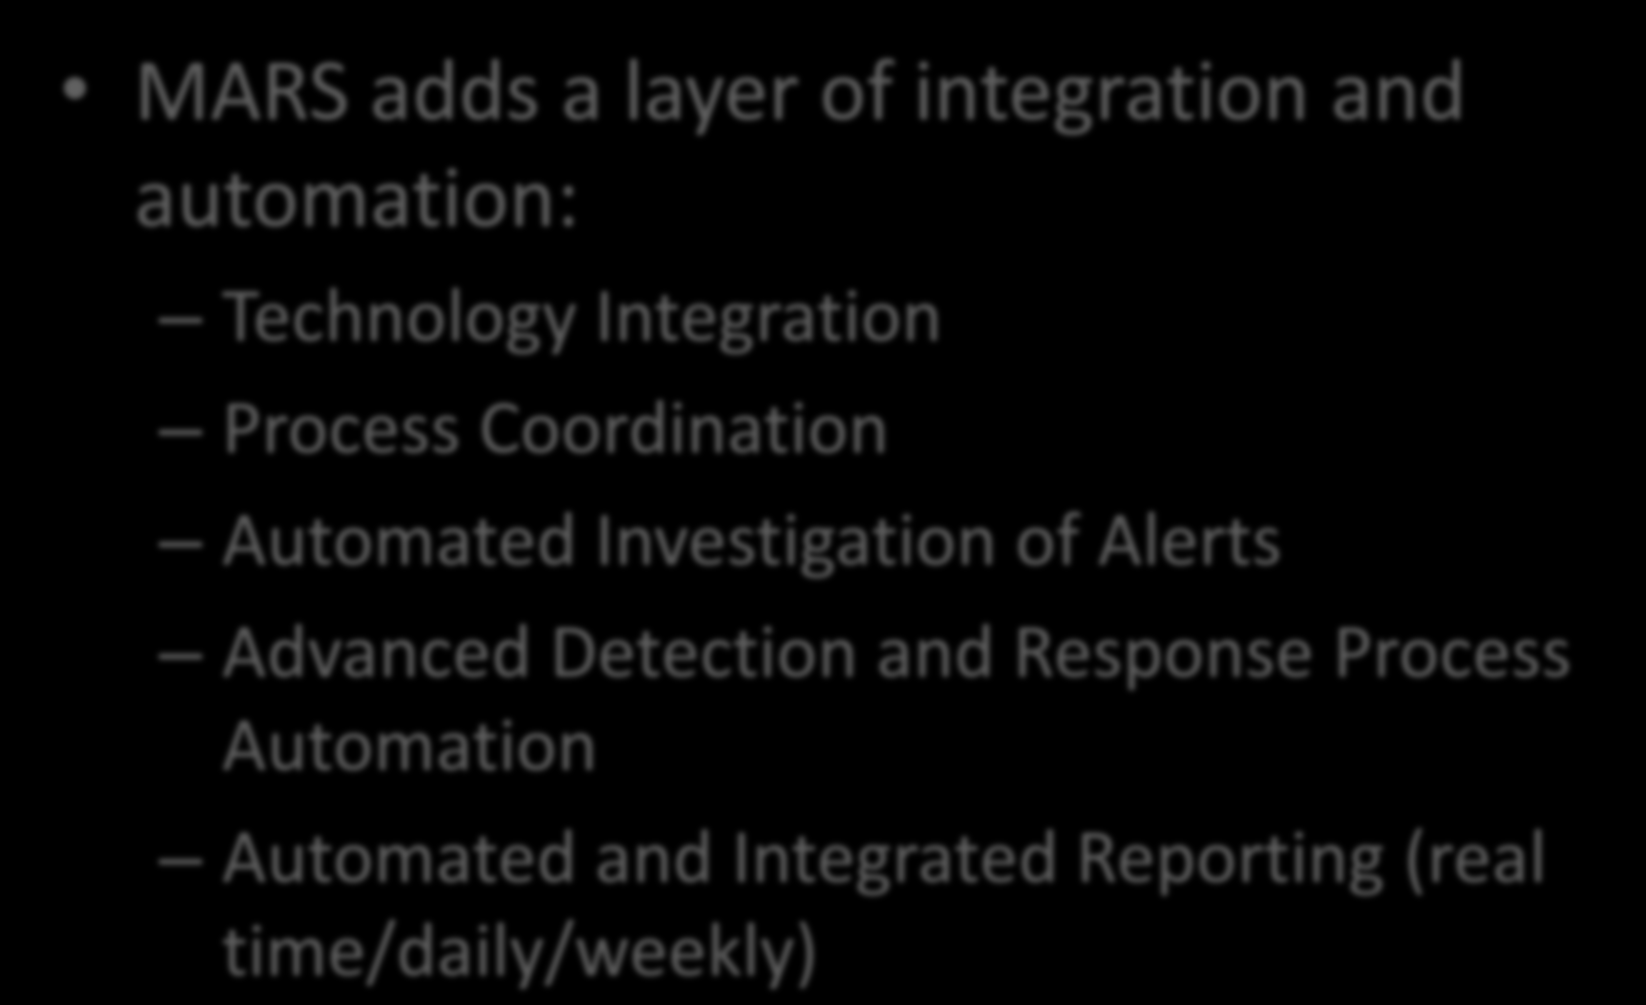 MARS adds a layer of integration and automation: Technology Integration Process Coordination Automated Investigation